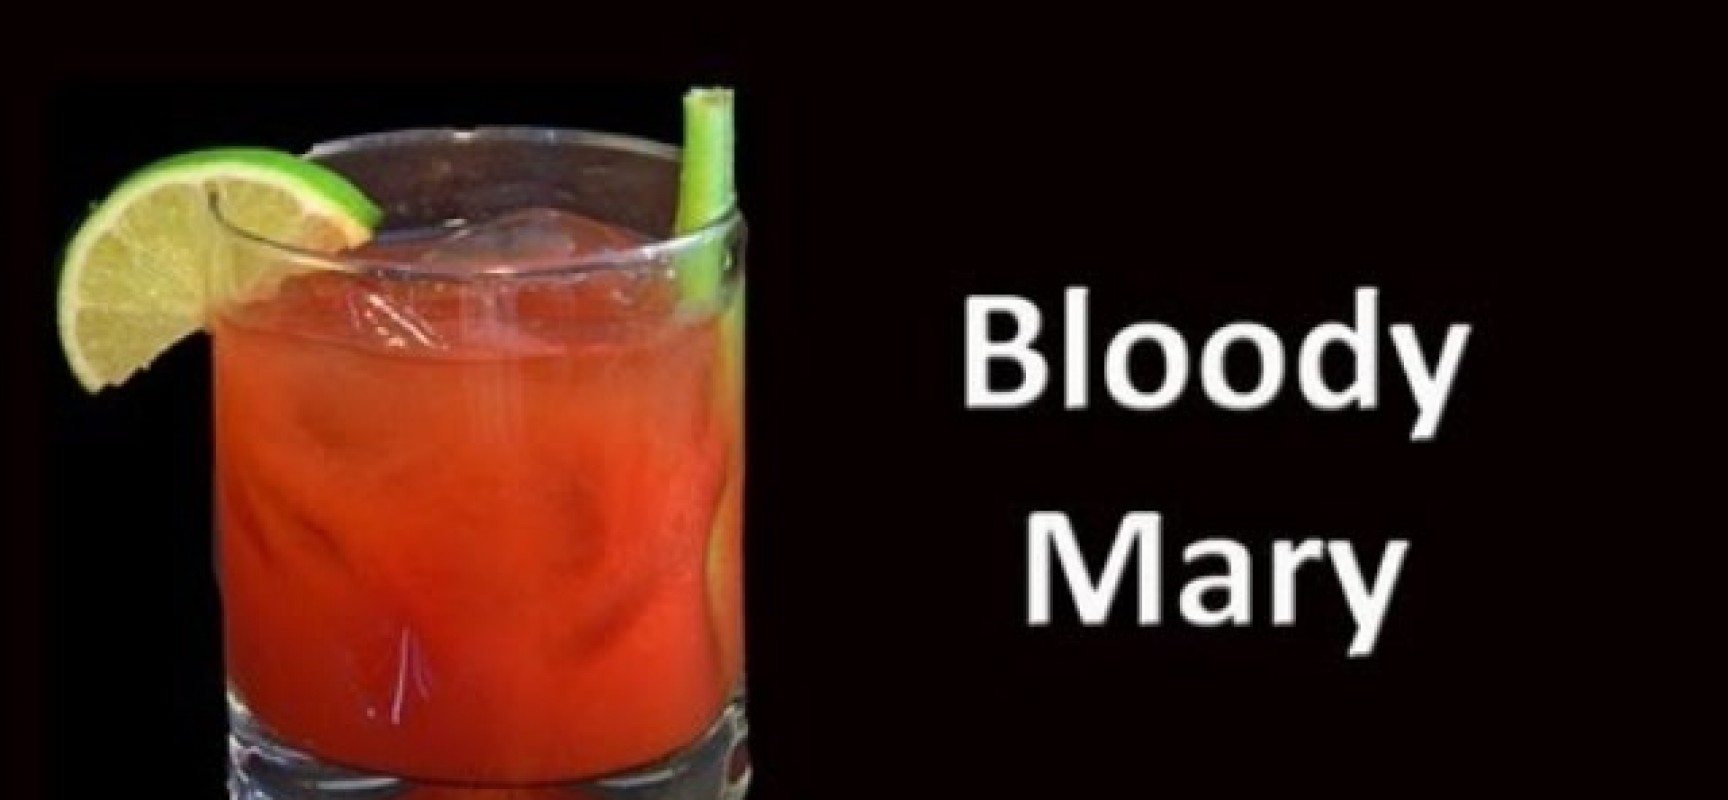 Bloody Mary One Of The Most Popular Cocktails Crave Bits